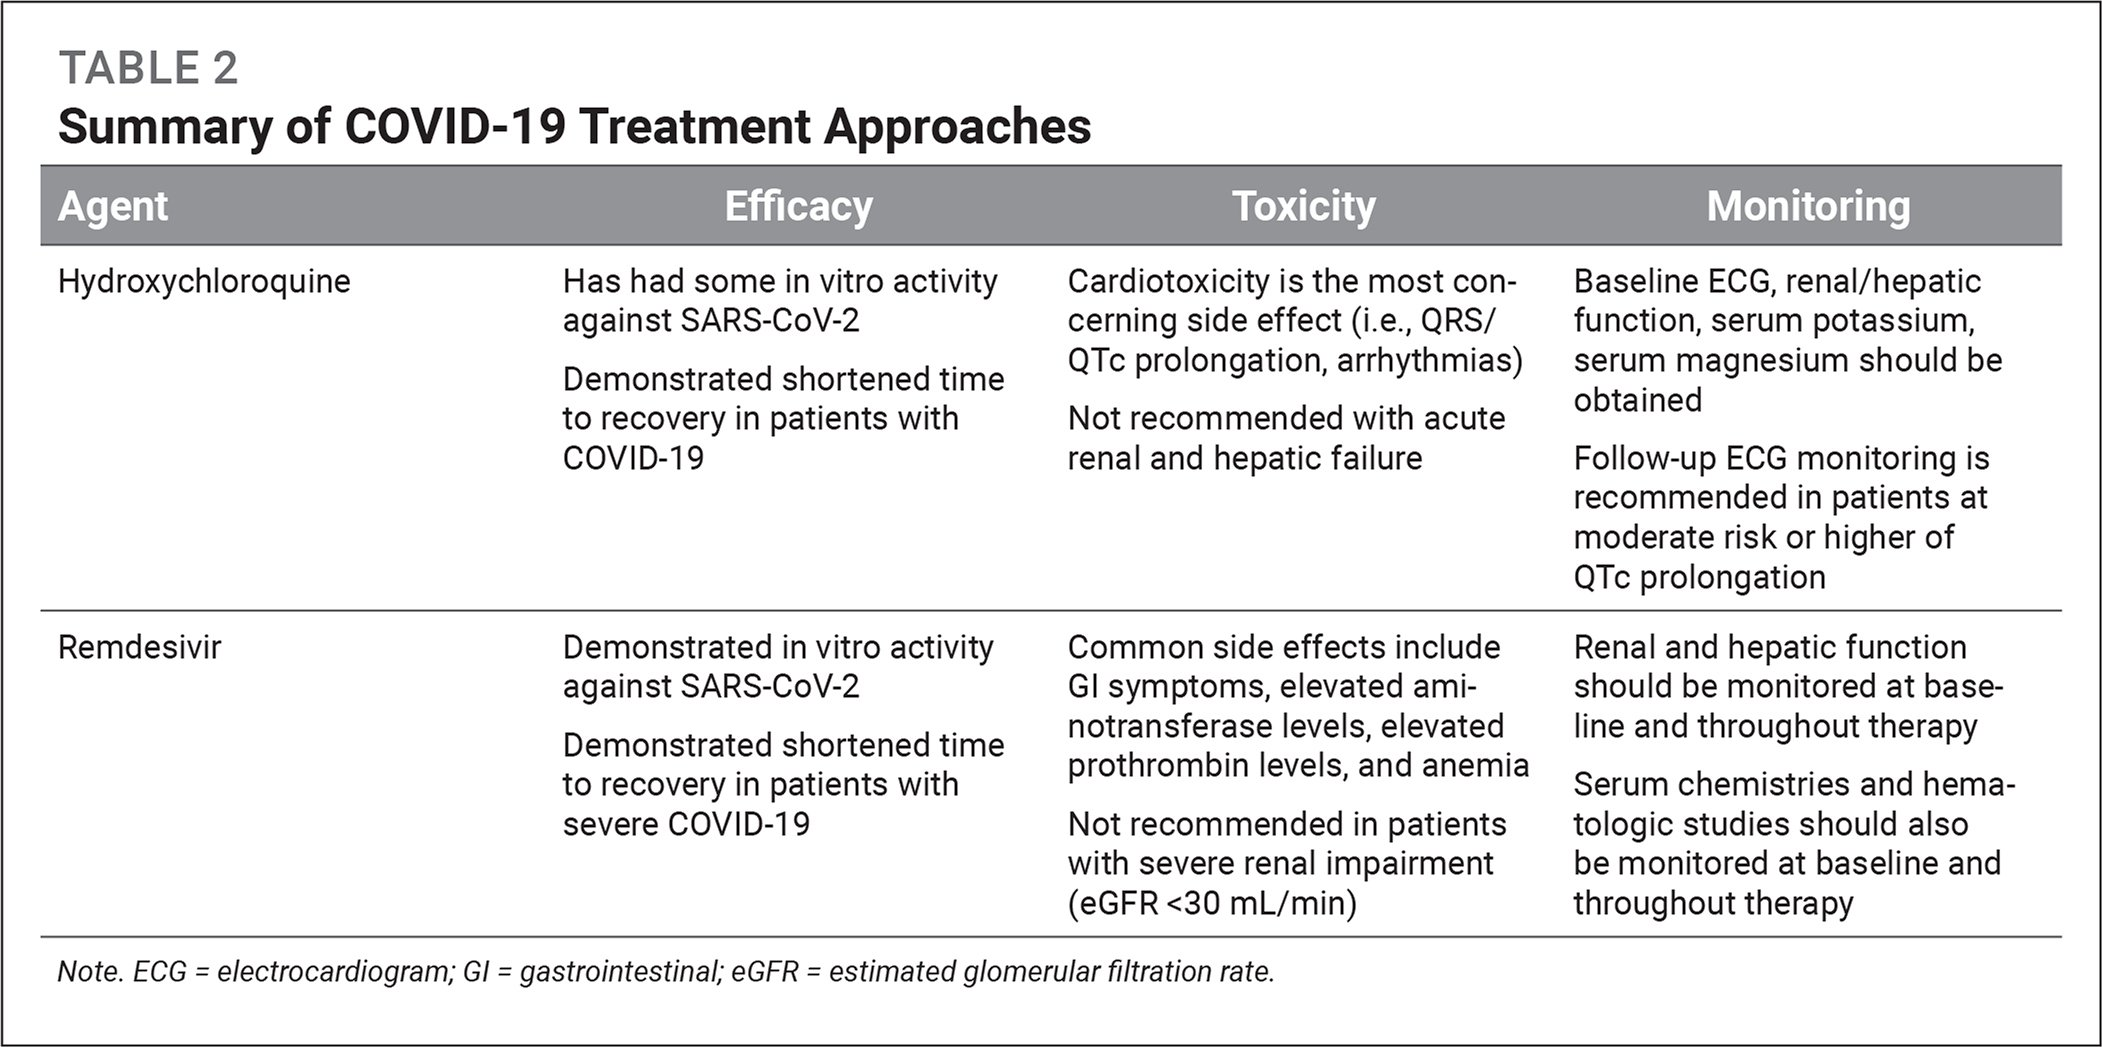 Summary of COVID-19 Treatment Approaches